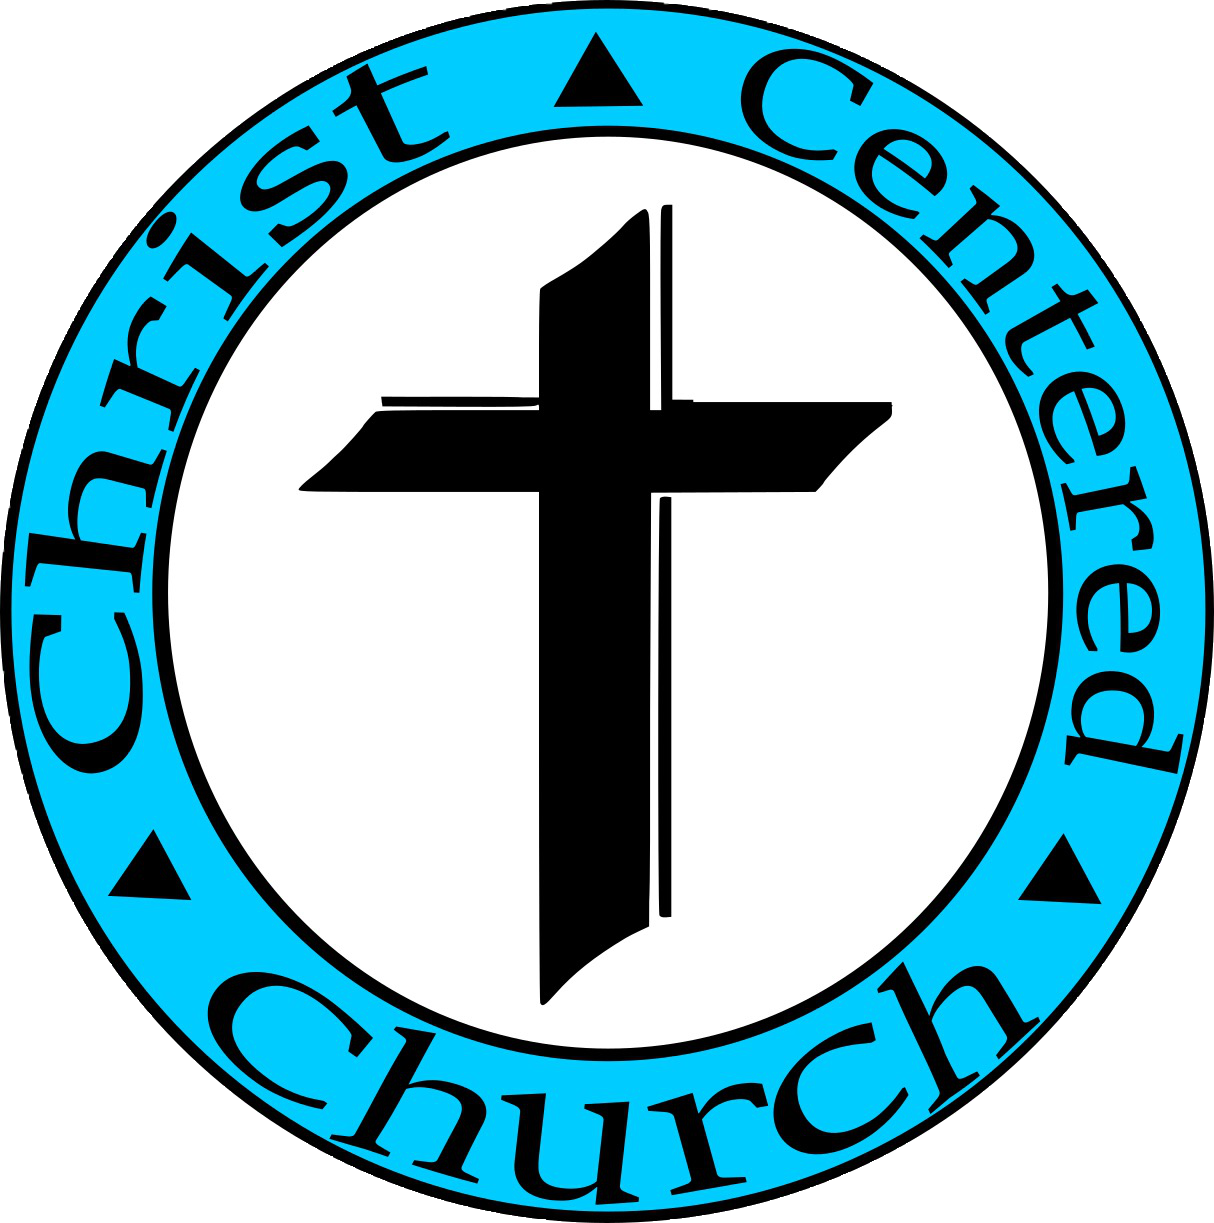 Christ Centered Church